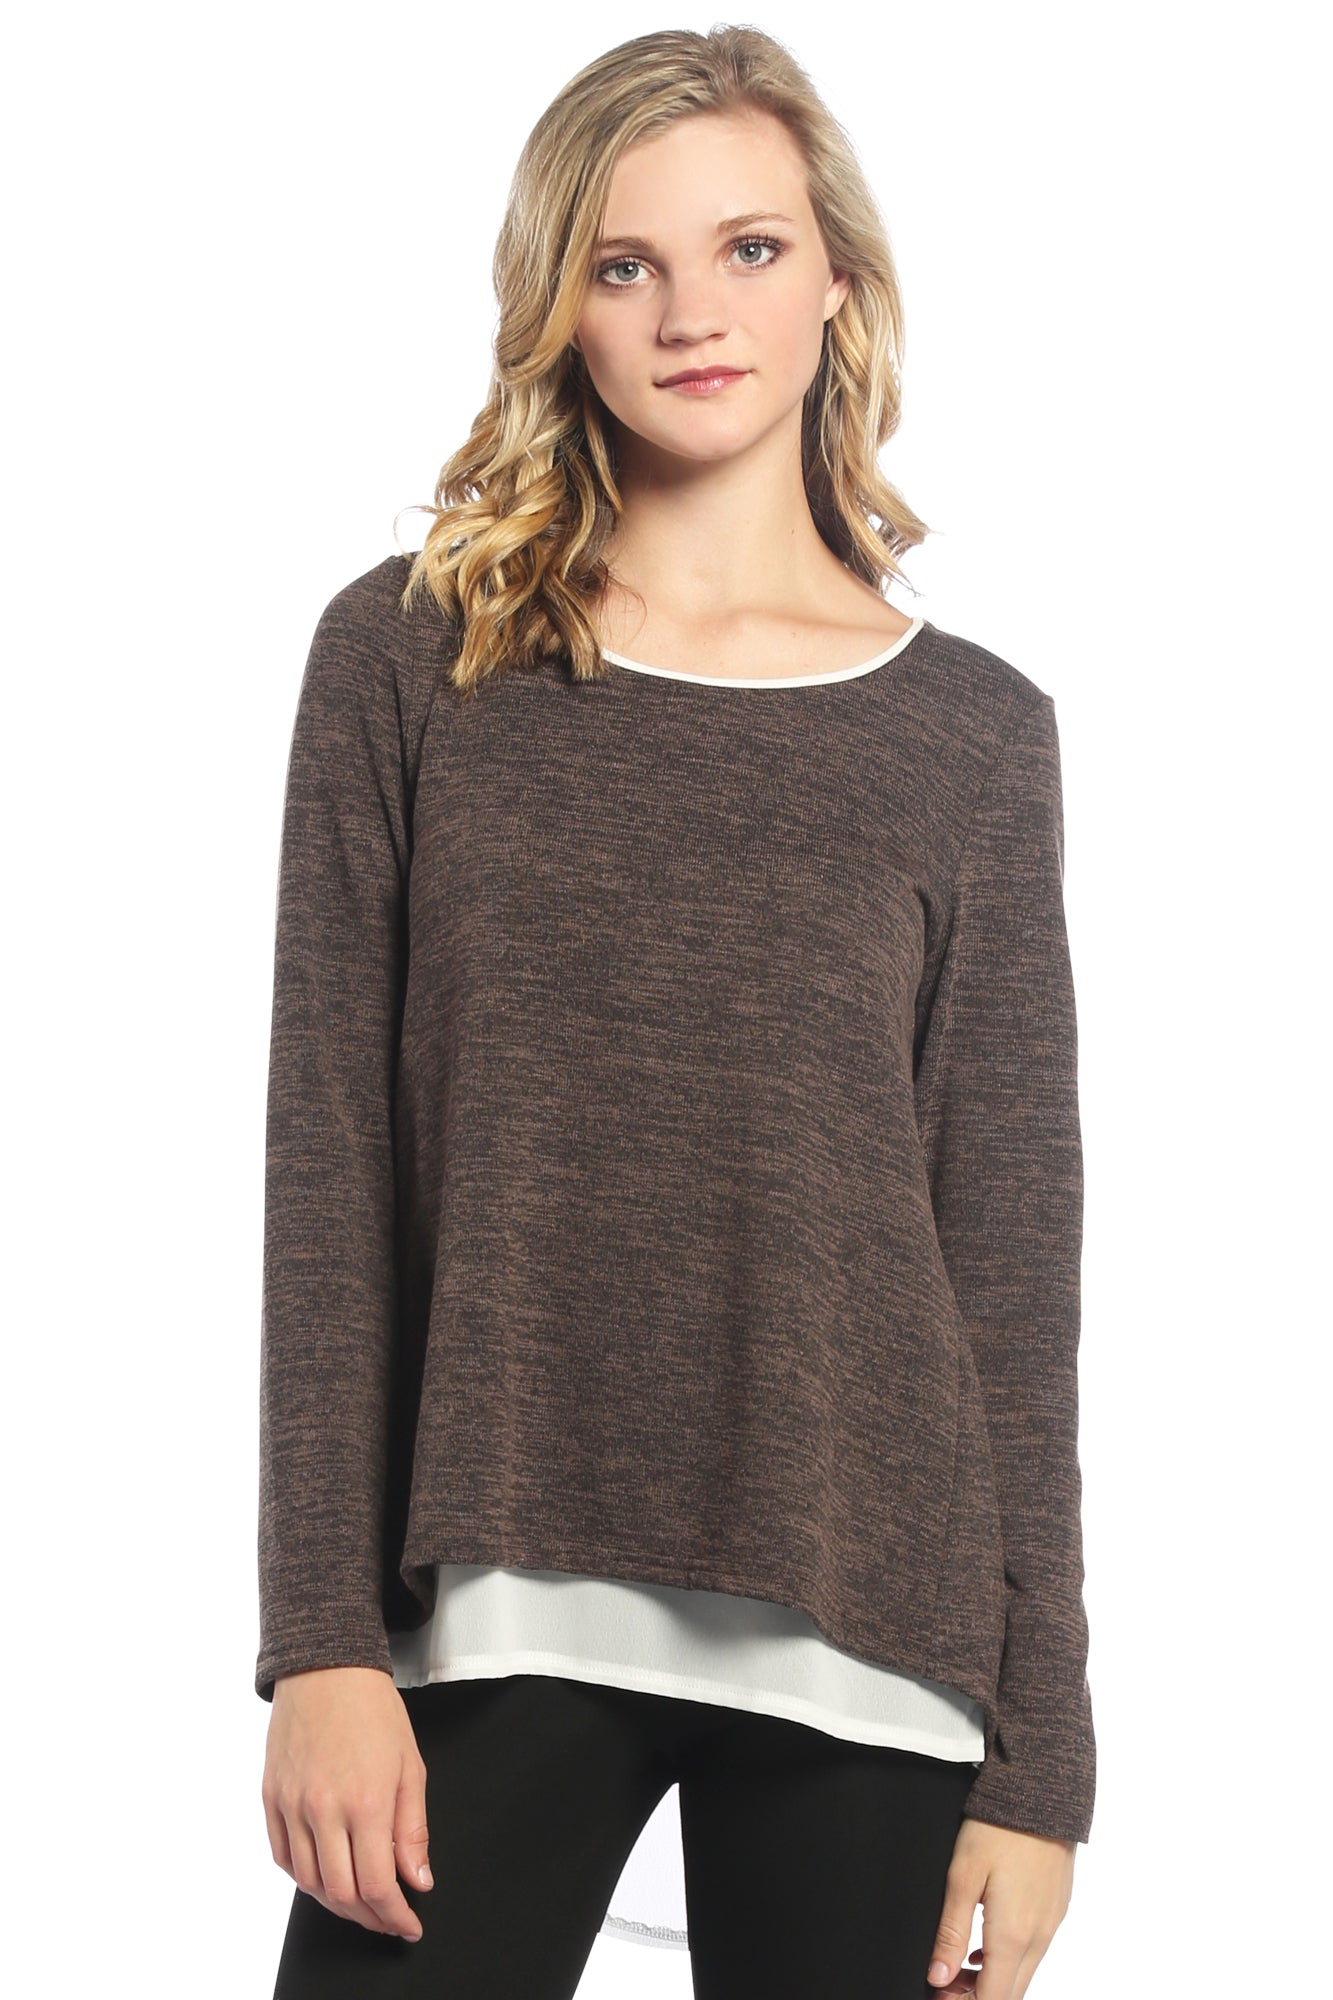 Open Back Layered Top in Brown